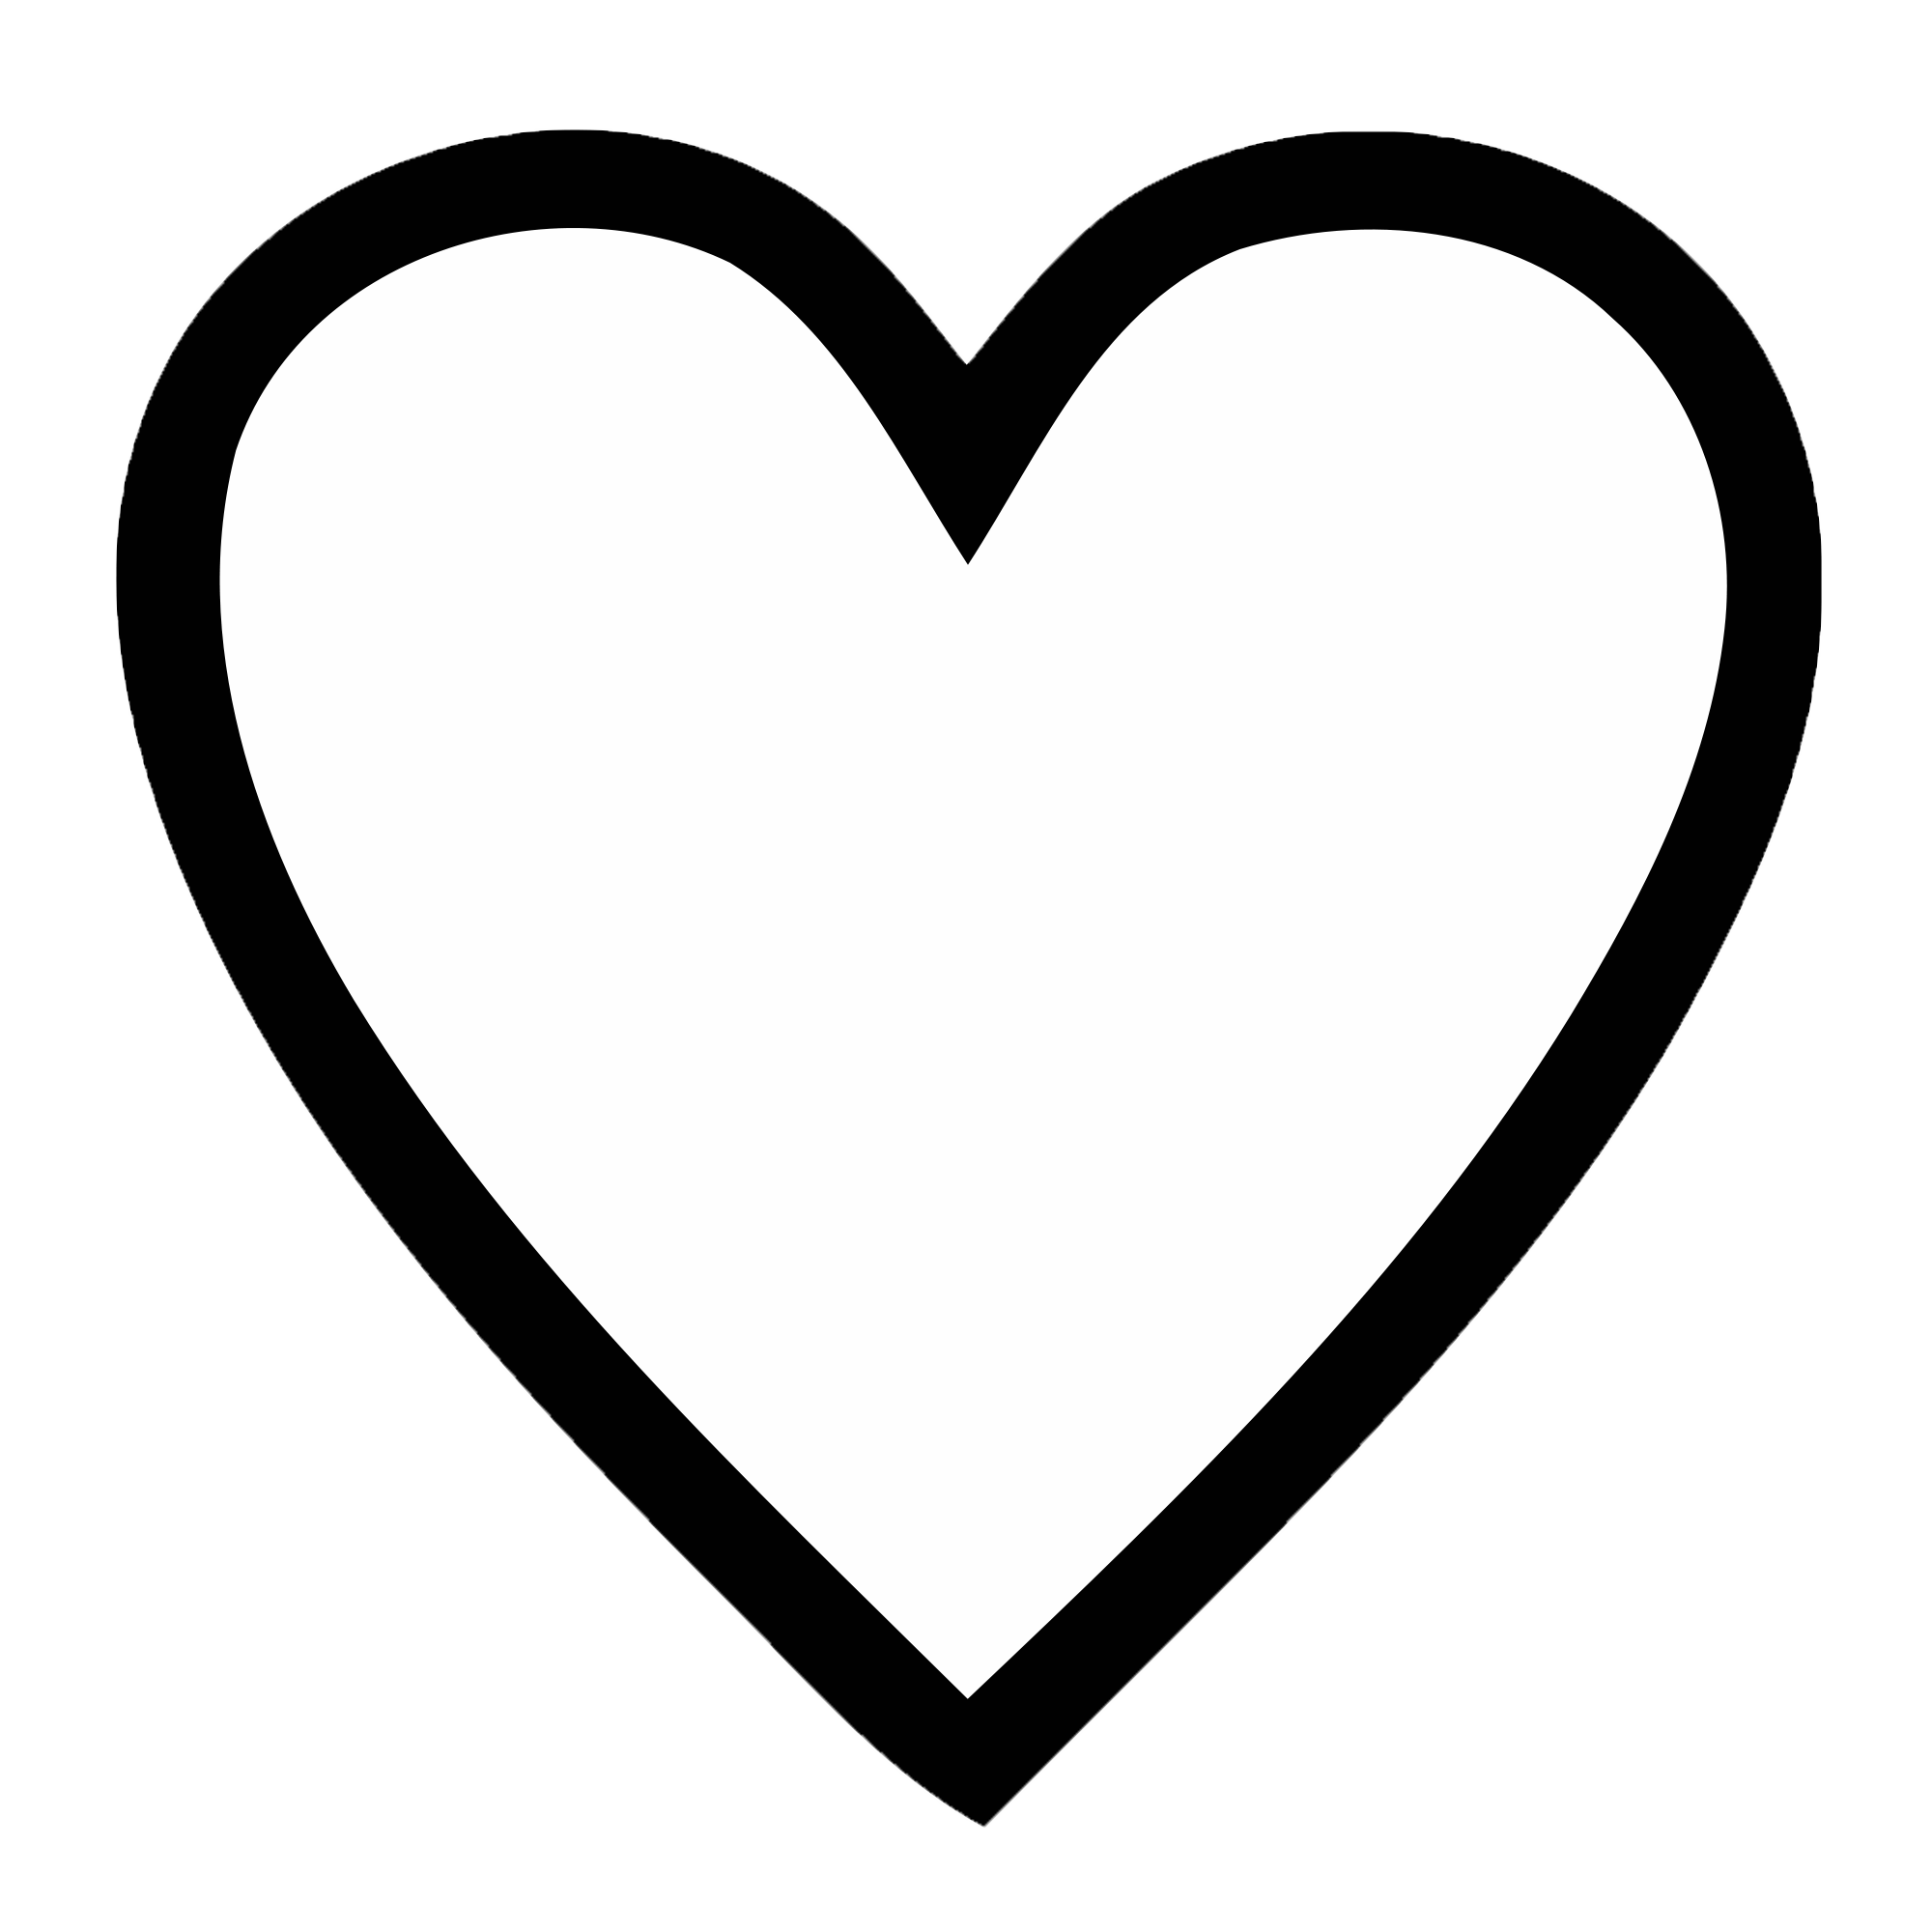 Hearts transparent png. File heart sg wikimedia